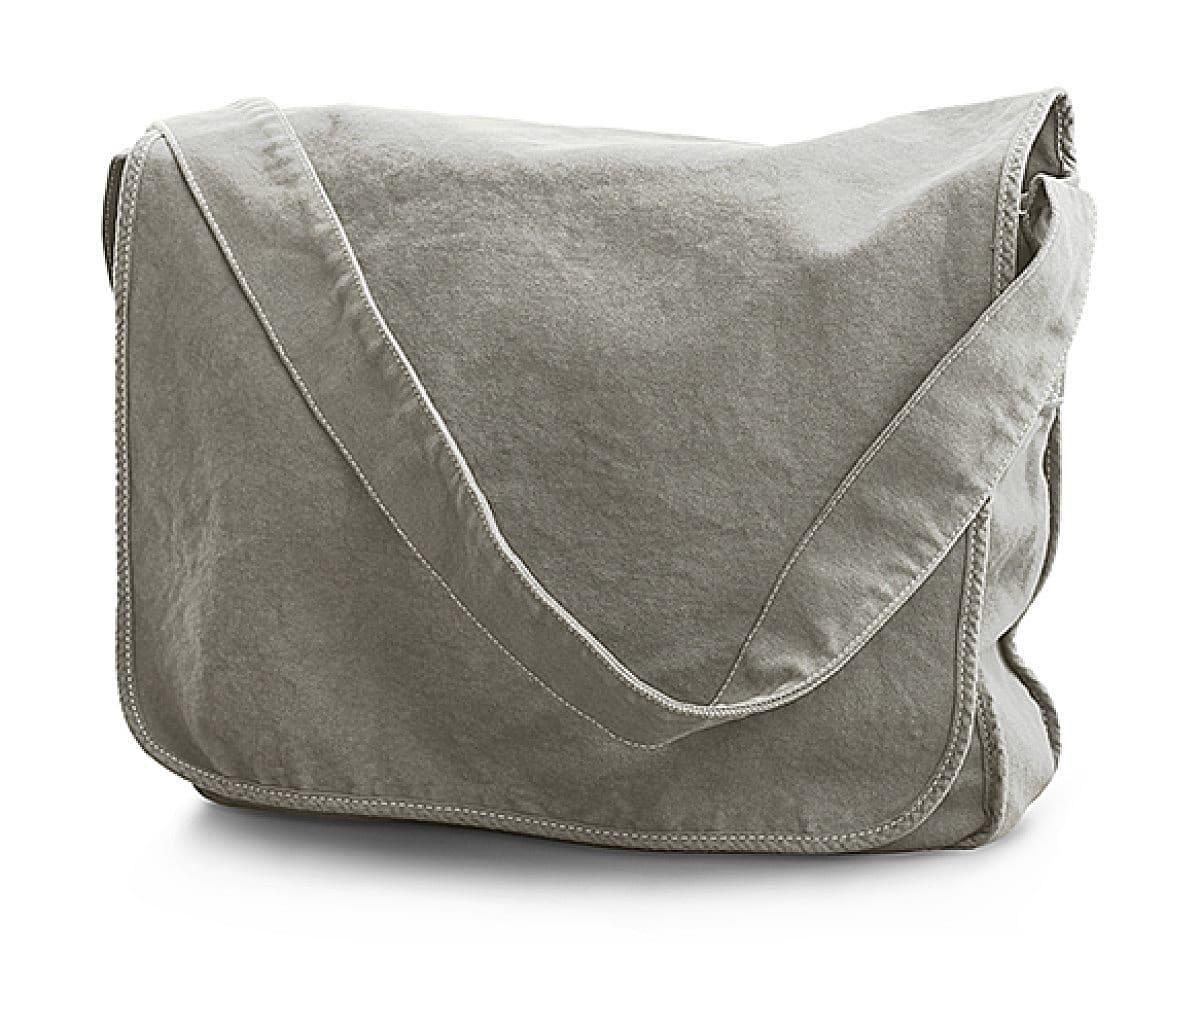 Jassz Bags Canvas Messenger Bag in Neutral Grey (Product Code: CA37309MB)